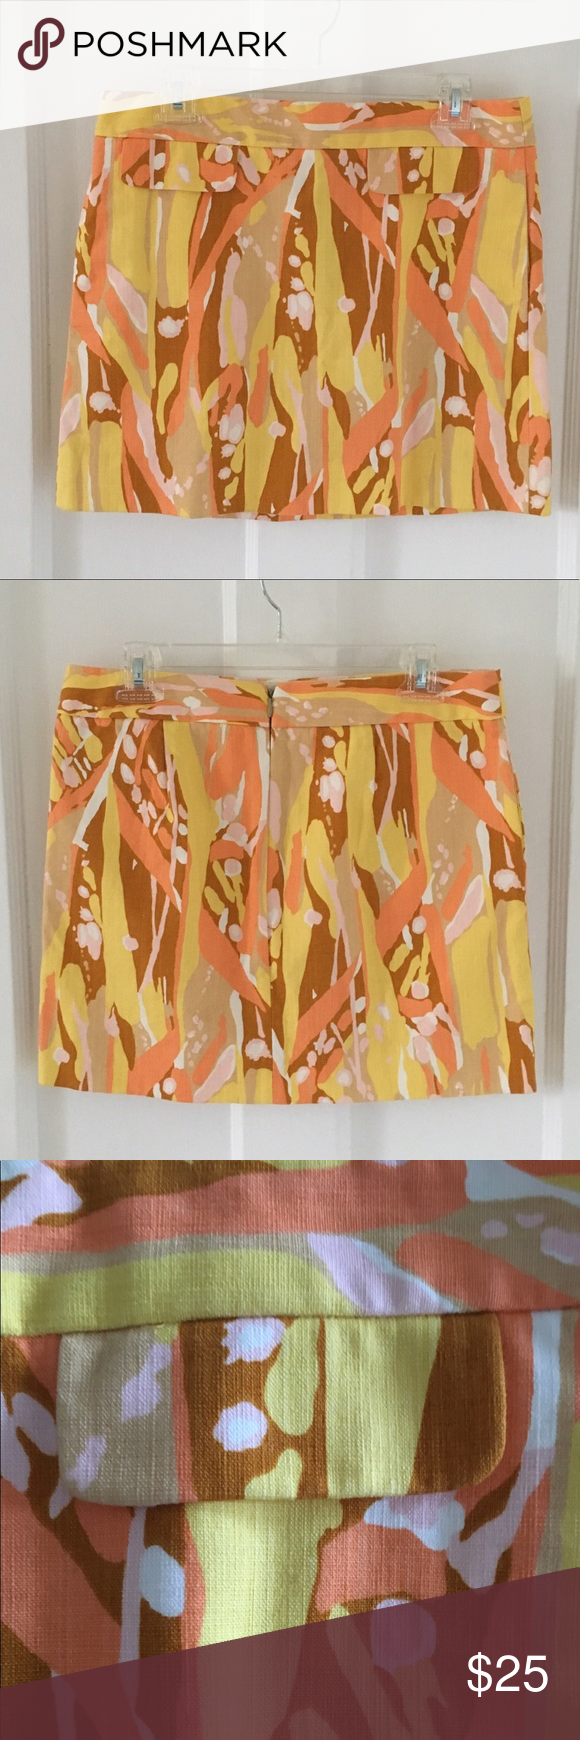 J Crew Mini Skirt Adorable mini skirt in a great vibrant print for summer. Perfect condition. Size 4 J. Crew Skirts Mini